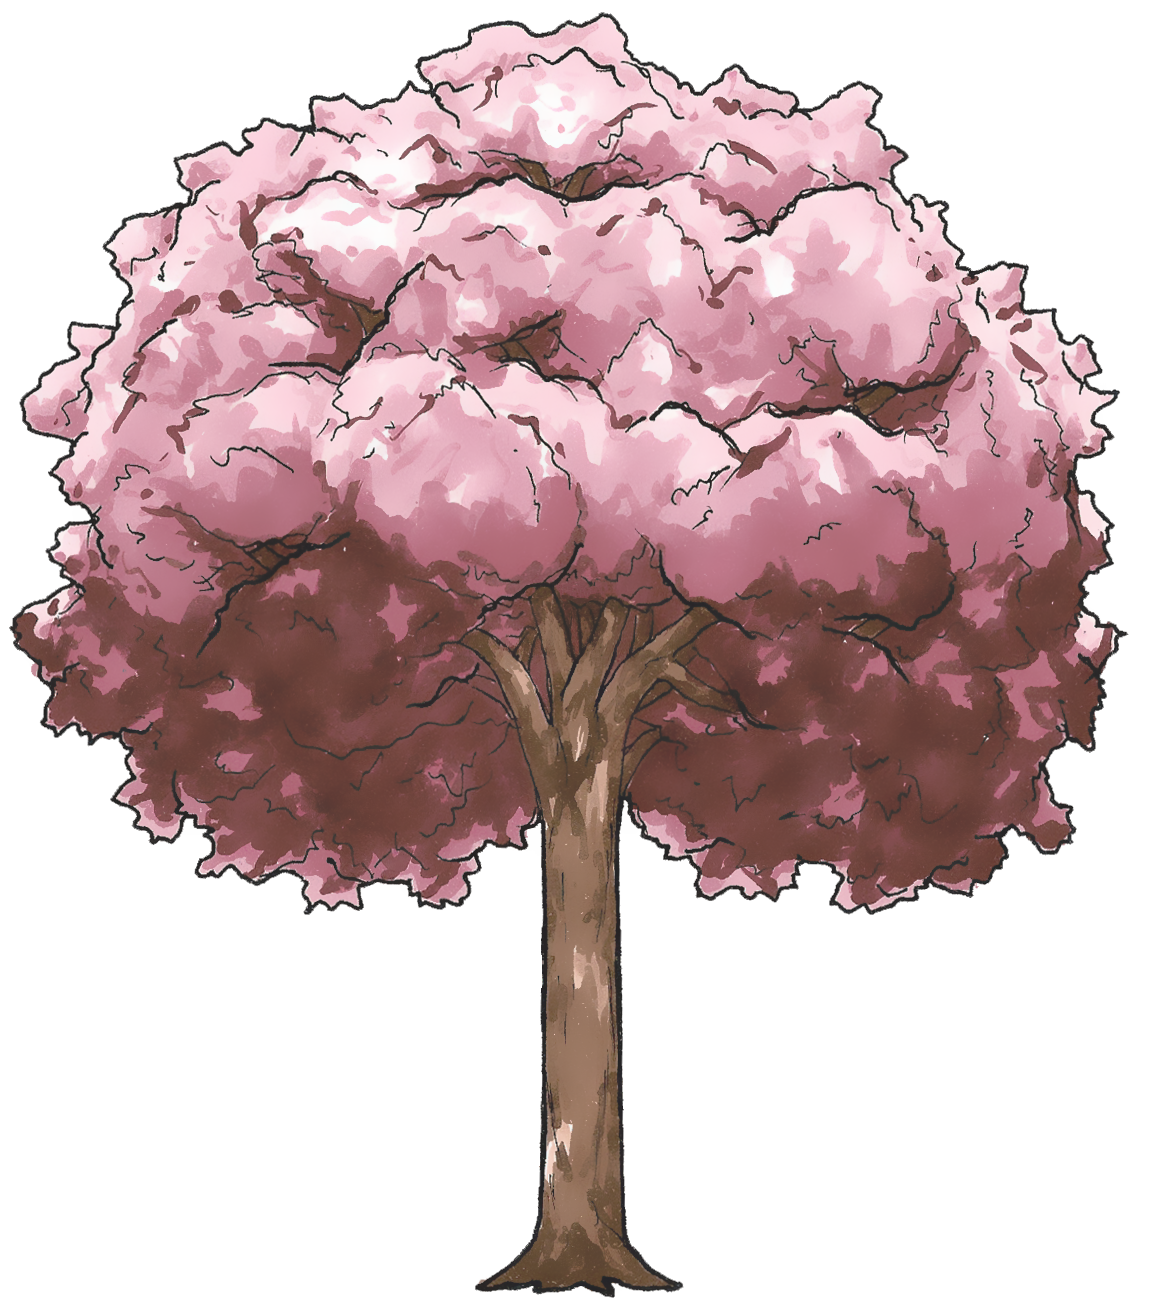 Sakura Tree Zomg by puremrz on DeviantArt